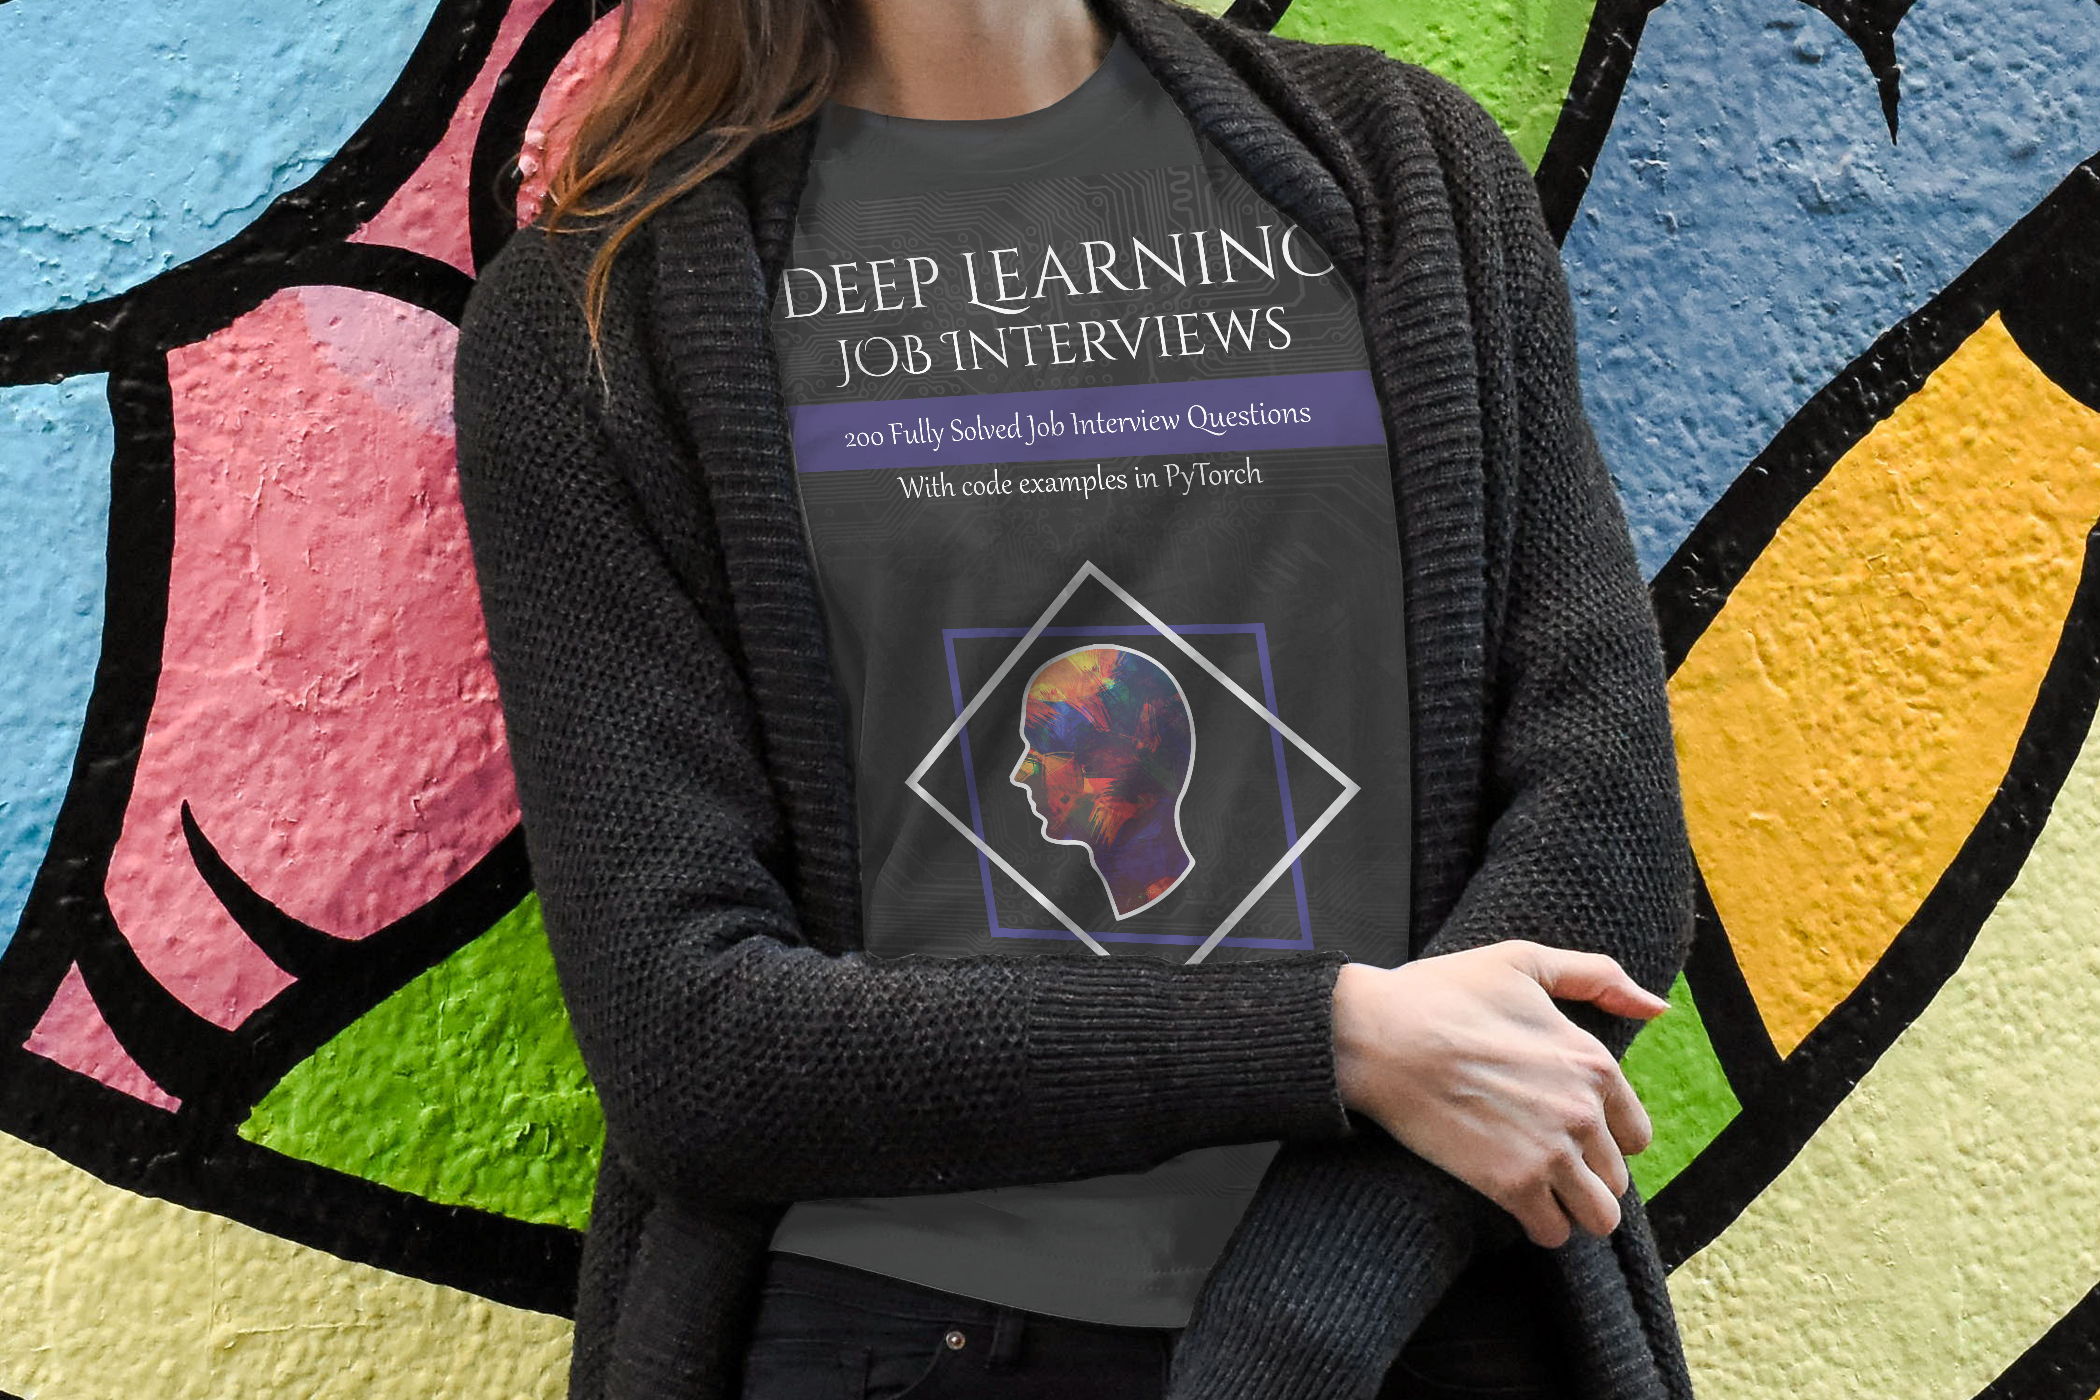 Sounds good? - Interviews AI provides the opportunity to explore a range of topics allowing you the freedom to develop your study pathway to reflect your interests including Computer Vision, Information Theory, Logistic Regression, PyTorch, Probability, Calculus, Bayesian Inference, Data Science, Deep and Machine Learning. Deep Learning Job Interviews will be published soon on iBooks, Amazon etc., and copies will ship in late 2019.